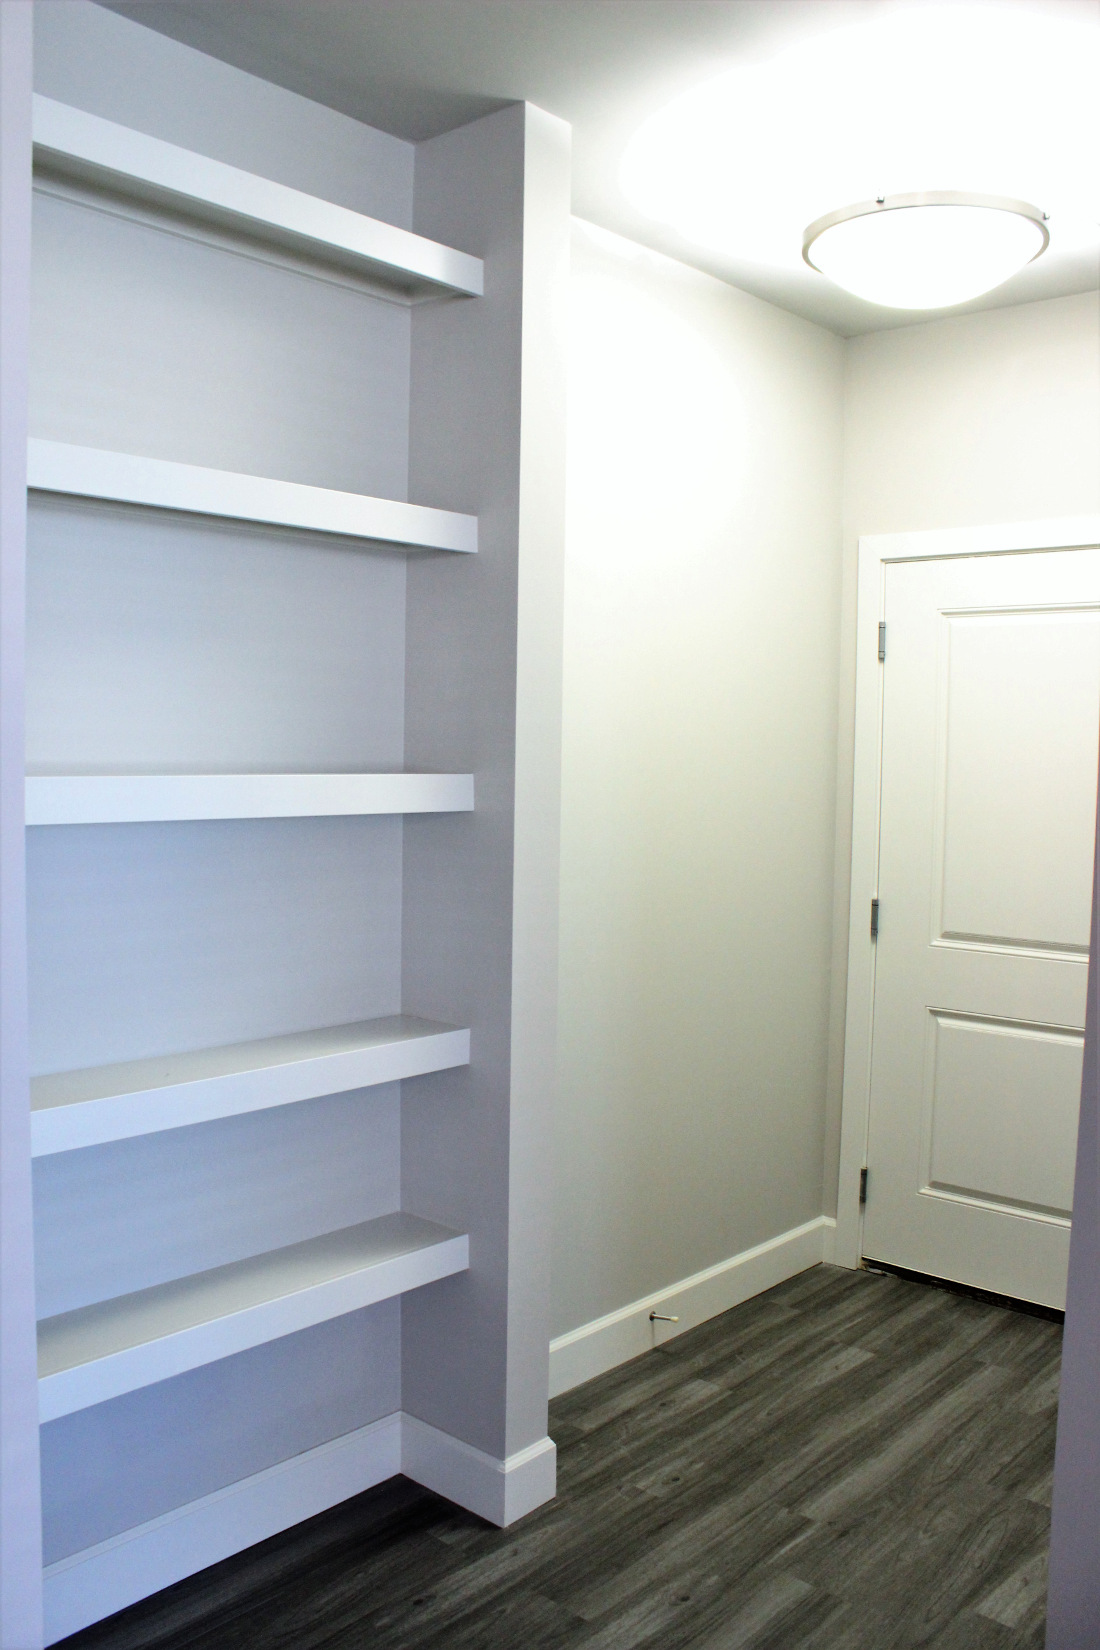 B1 Closet at the Vue at Creve Coeur Apartments in Creve Coeur, MO